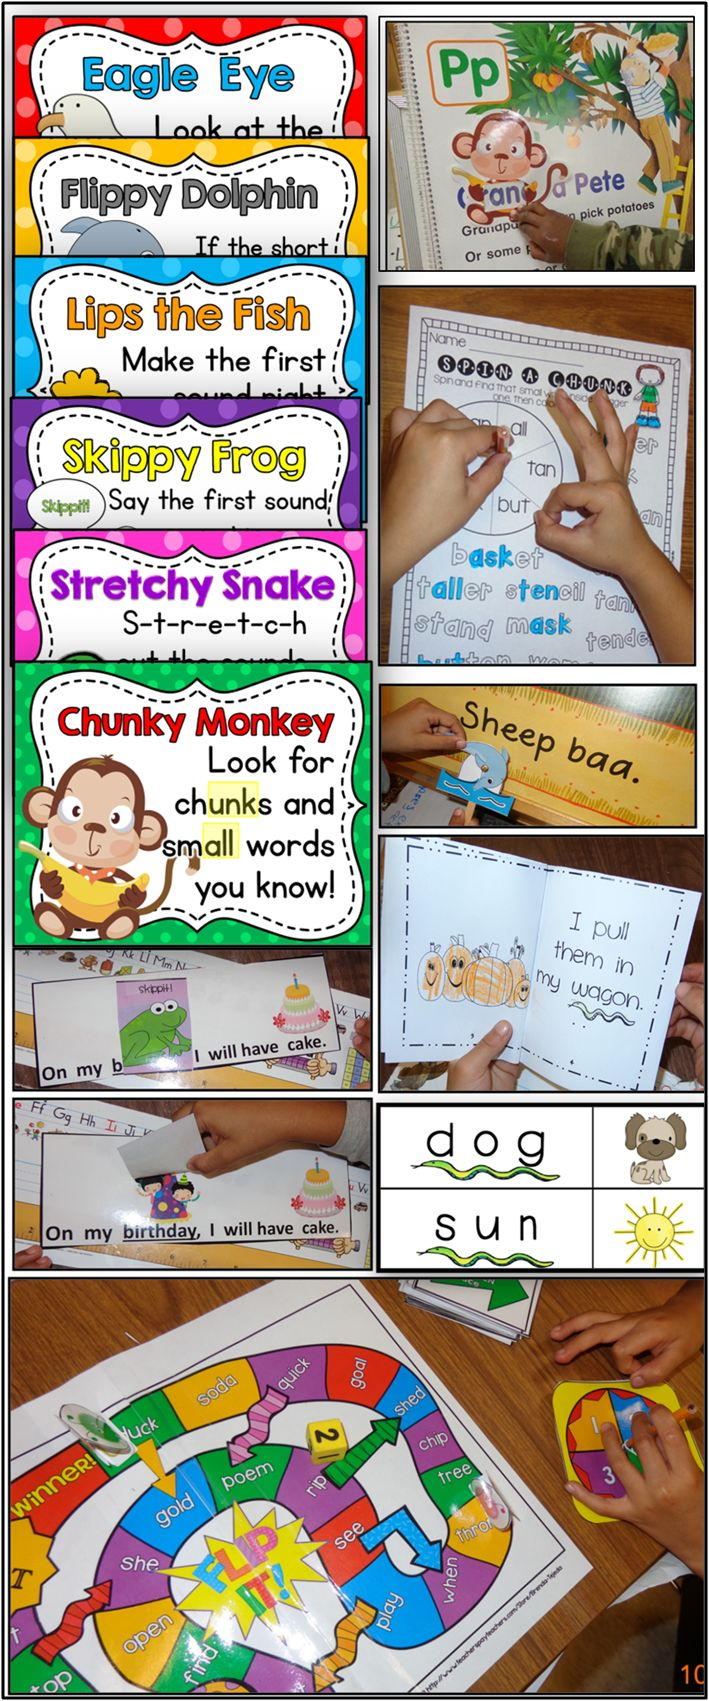 Fun, interactive way of teaching reading strategies. Bundle has 6 packs- Stretchy Snake, Chunky Monkey, Eagle Eye, Lips the Fish, Skippy Frog, and Flippy Dolphin, PLUS a review pack.